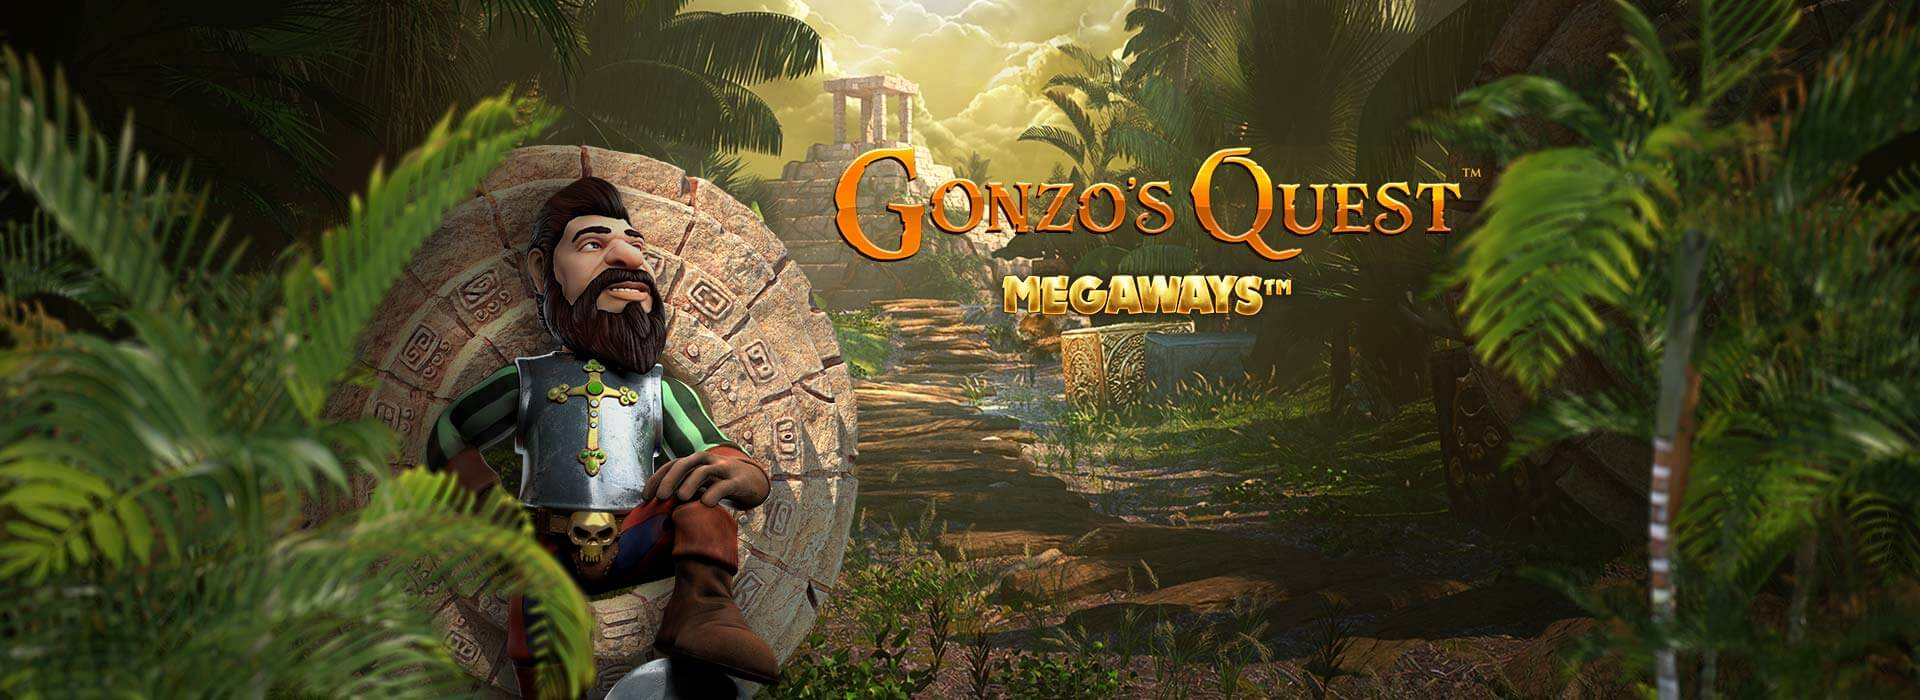 GONZO'S QUEST™ MEGAWAYS™